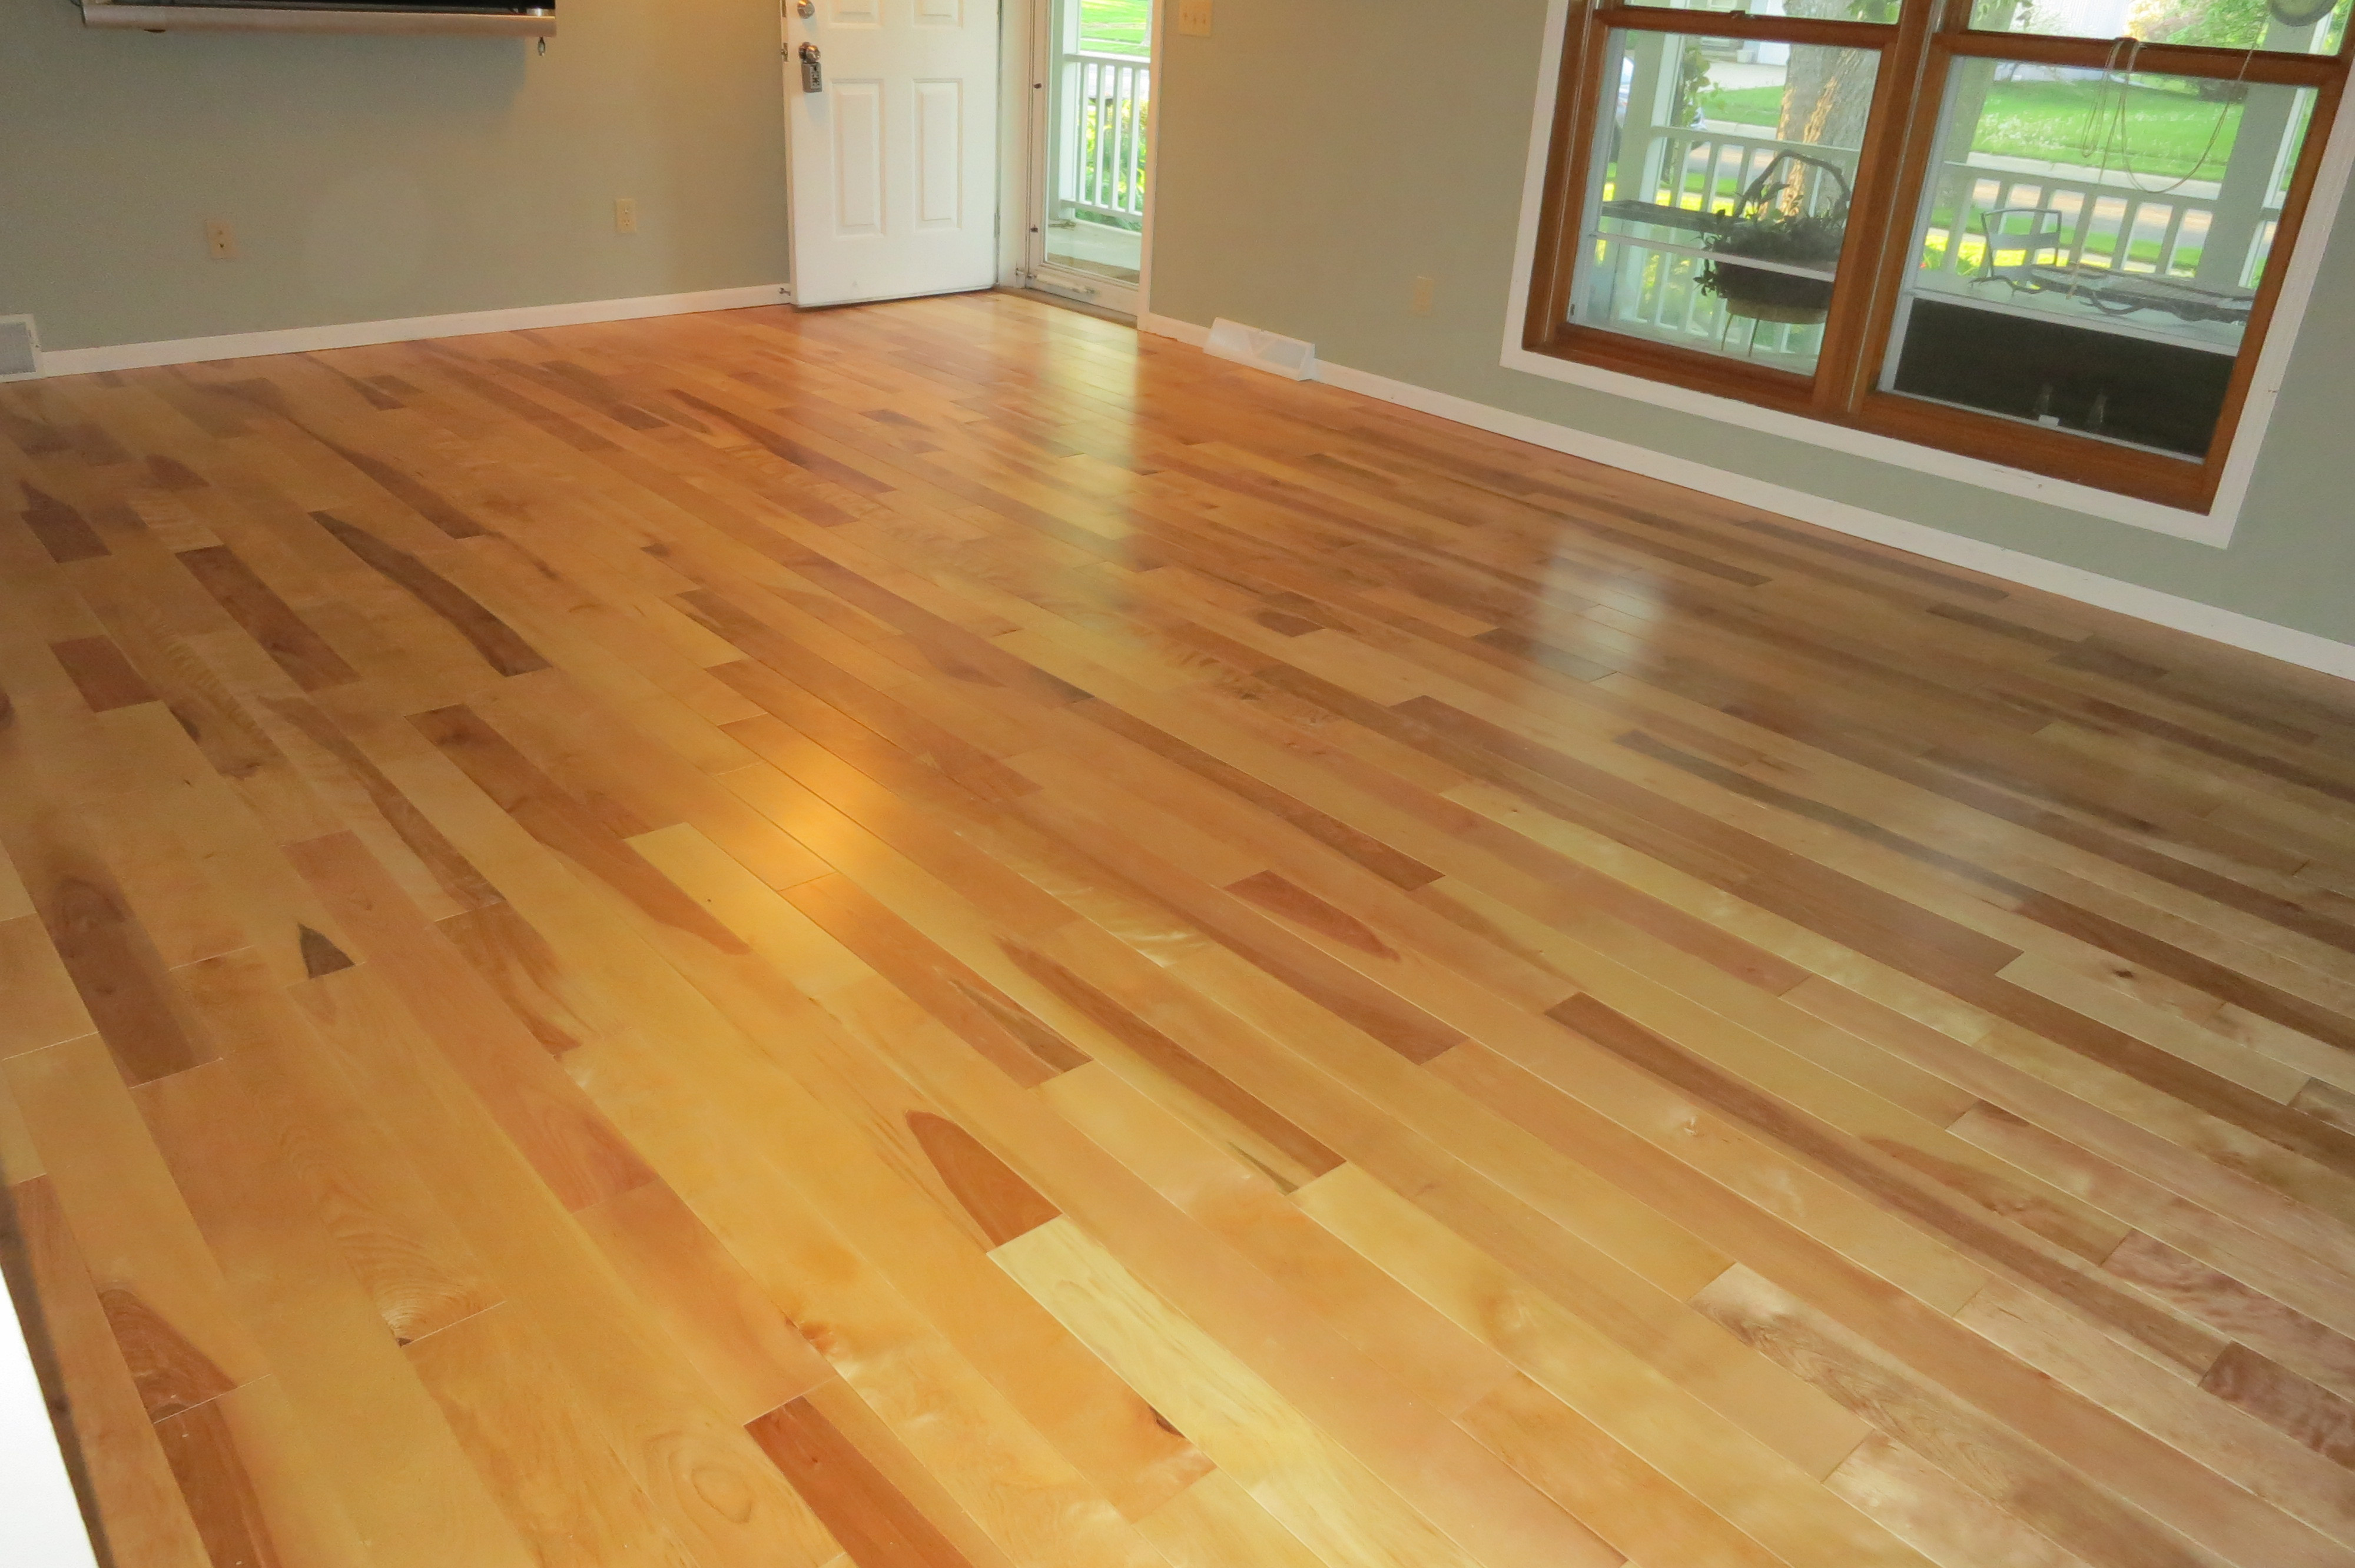 refinishing hardwood floors pet stains of imperial wood floors madison wi hardwood floors hardwood floor within home a